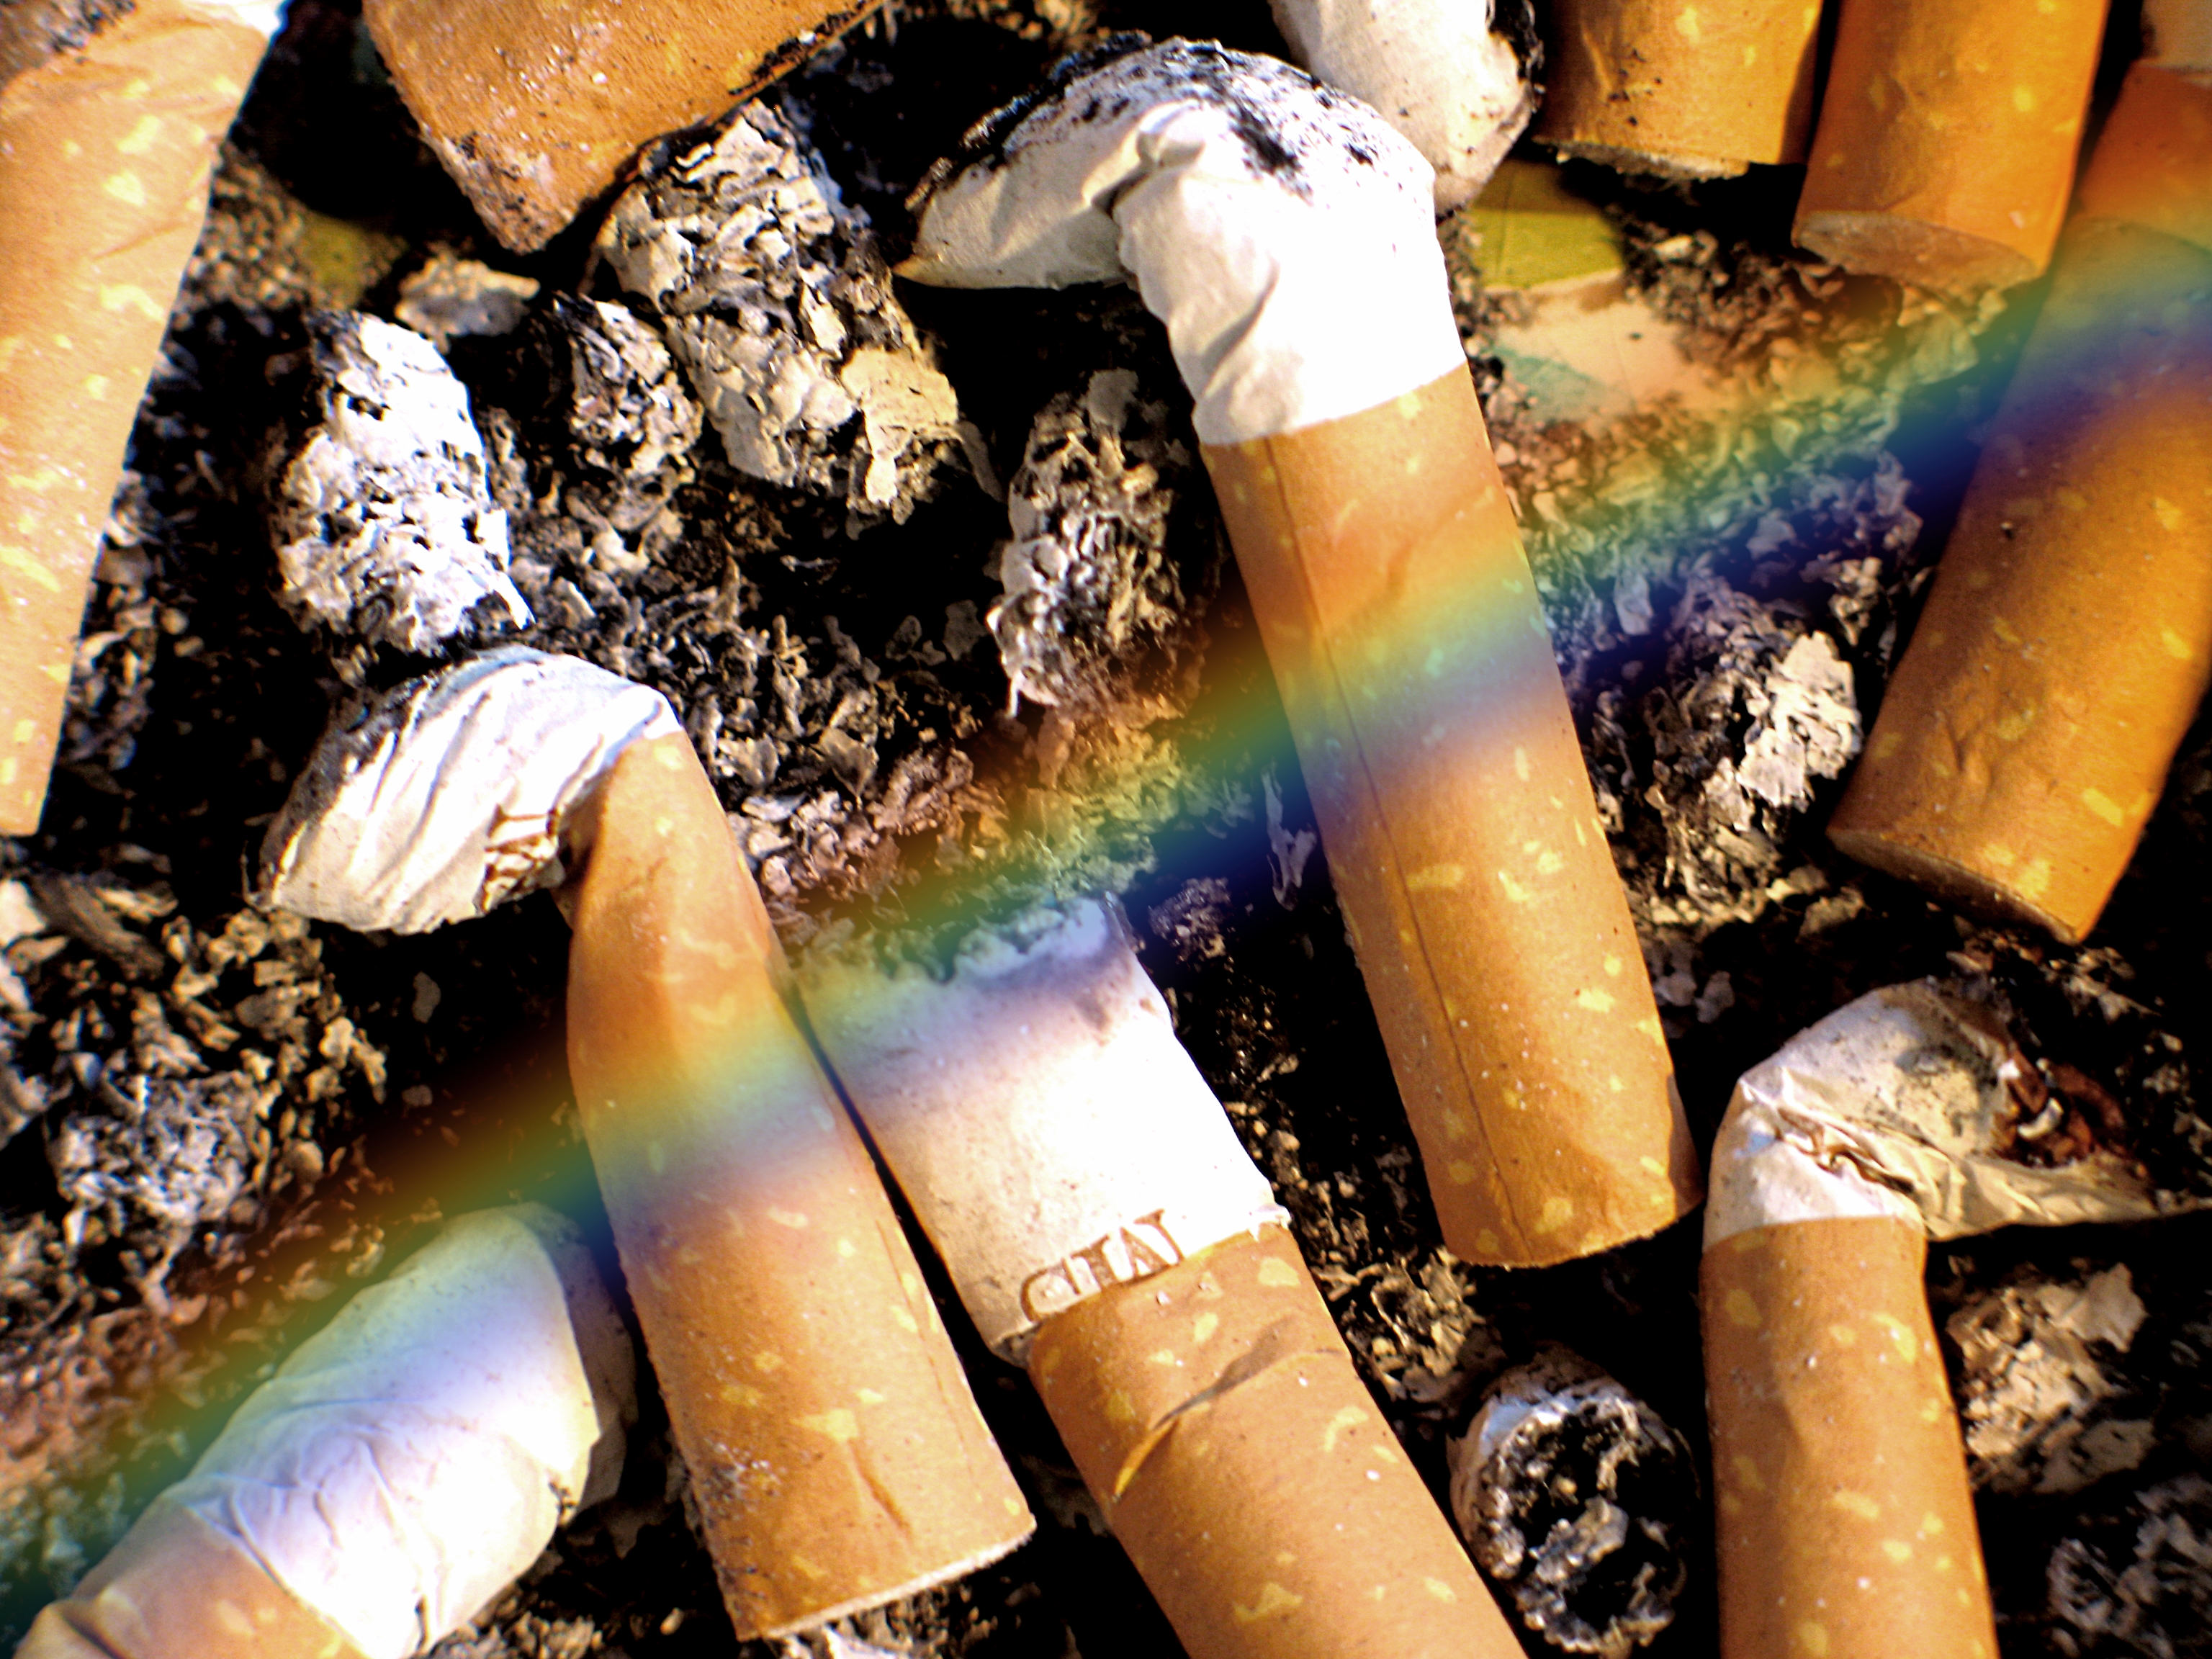 Does smoking increase anxiety and depression? If I quit, will I feel